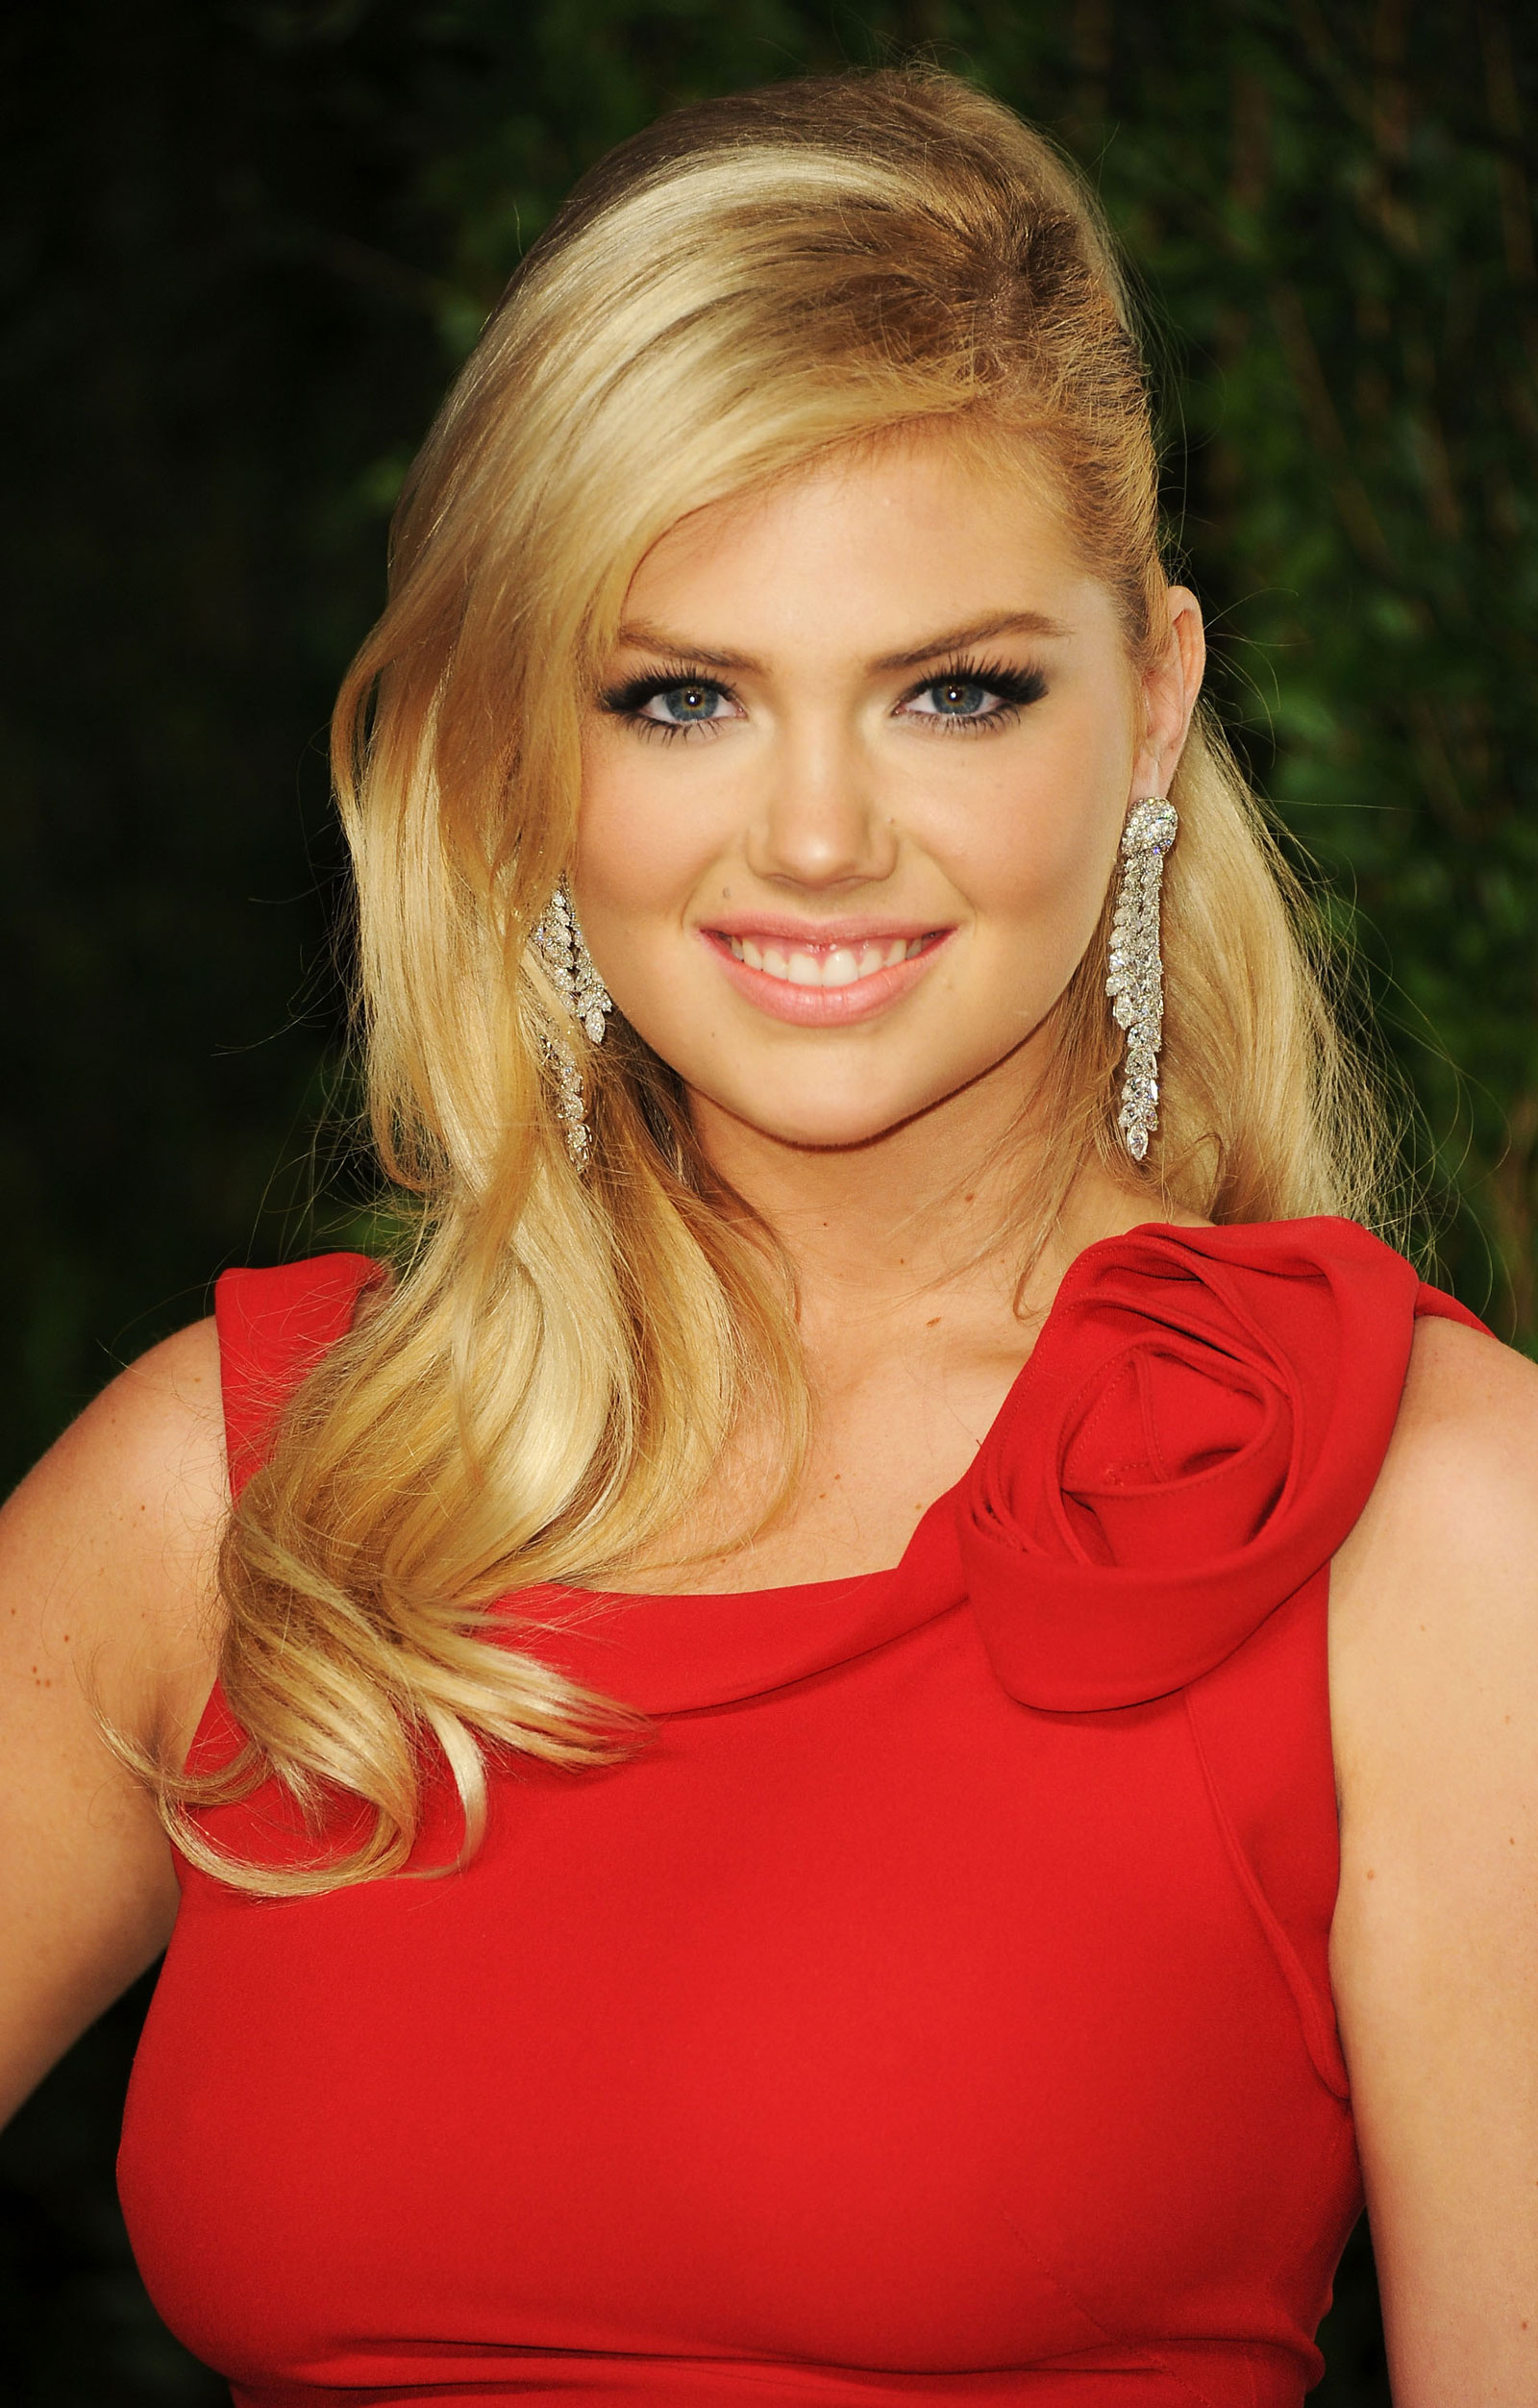 Kate Upton At 2012 Vanity Fair Oscar Party At Sunset Tower